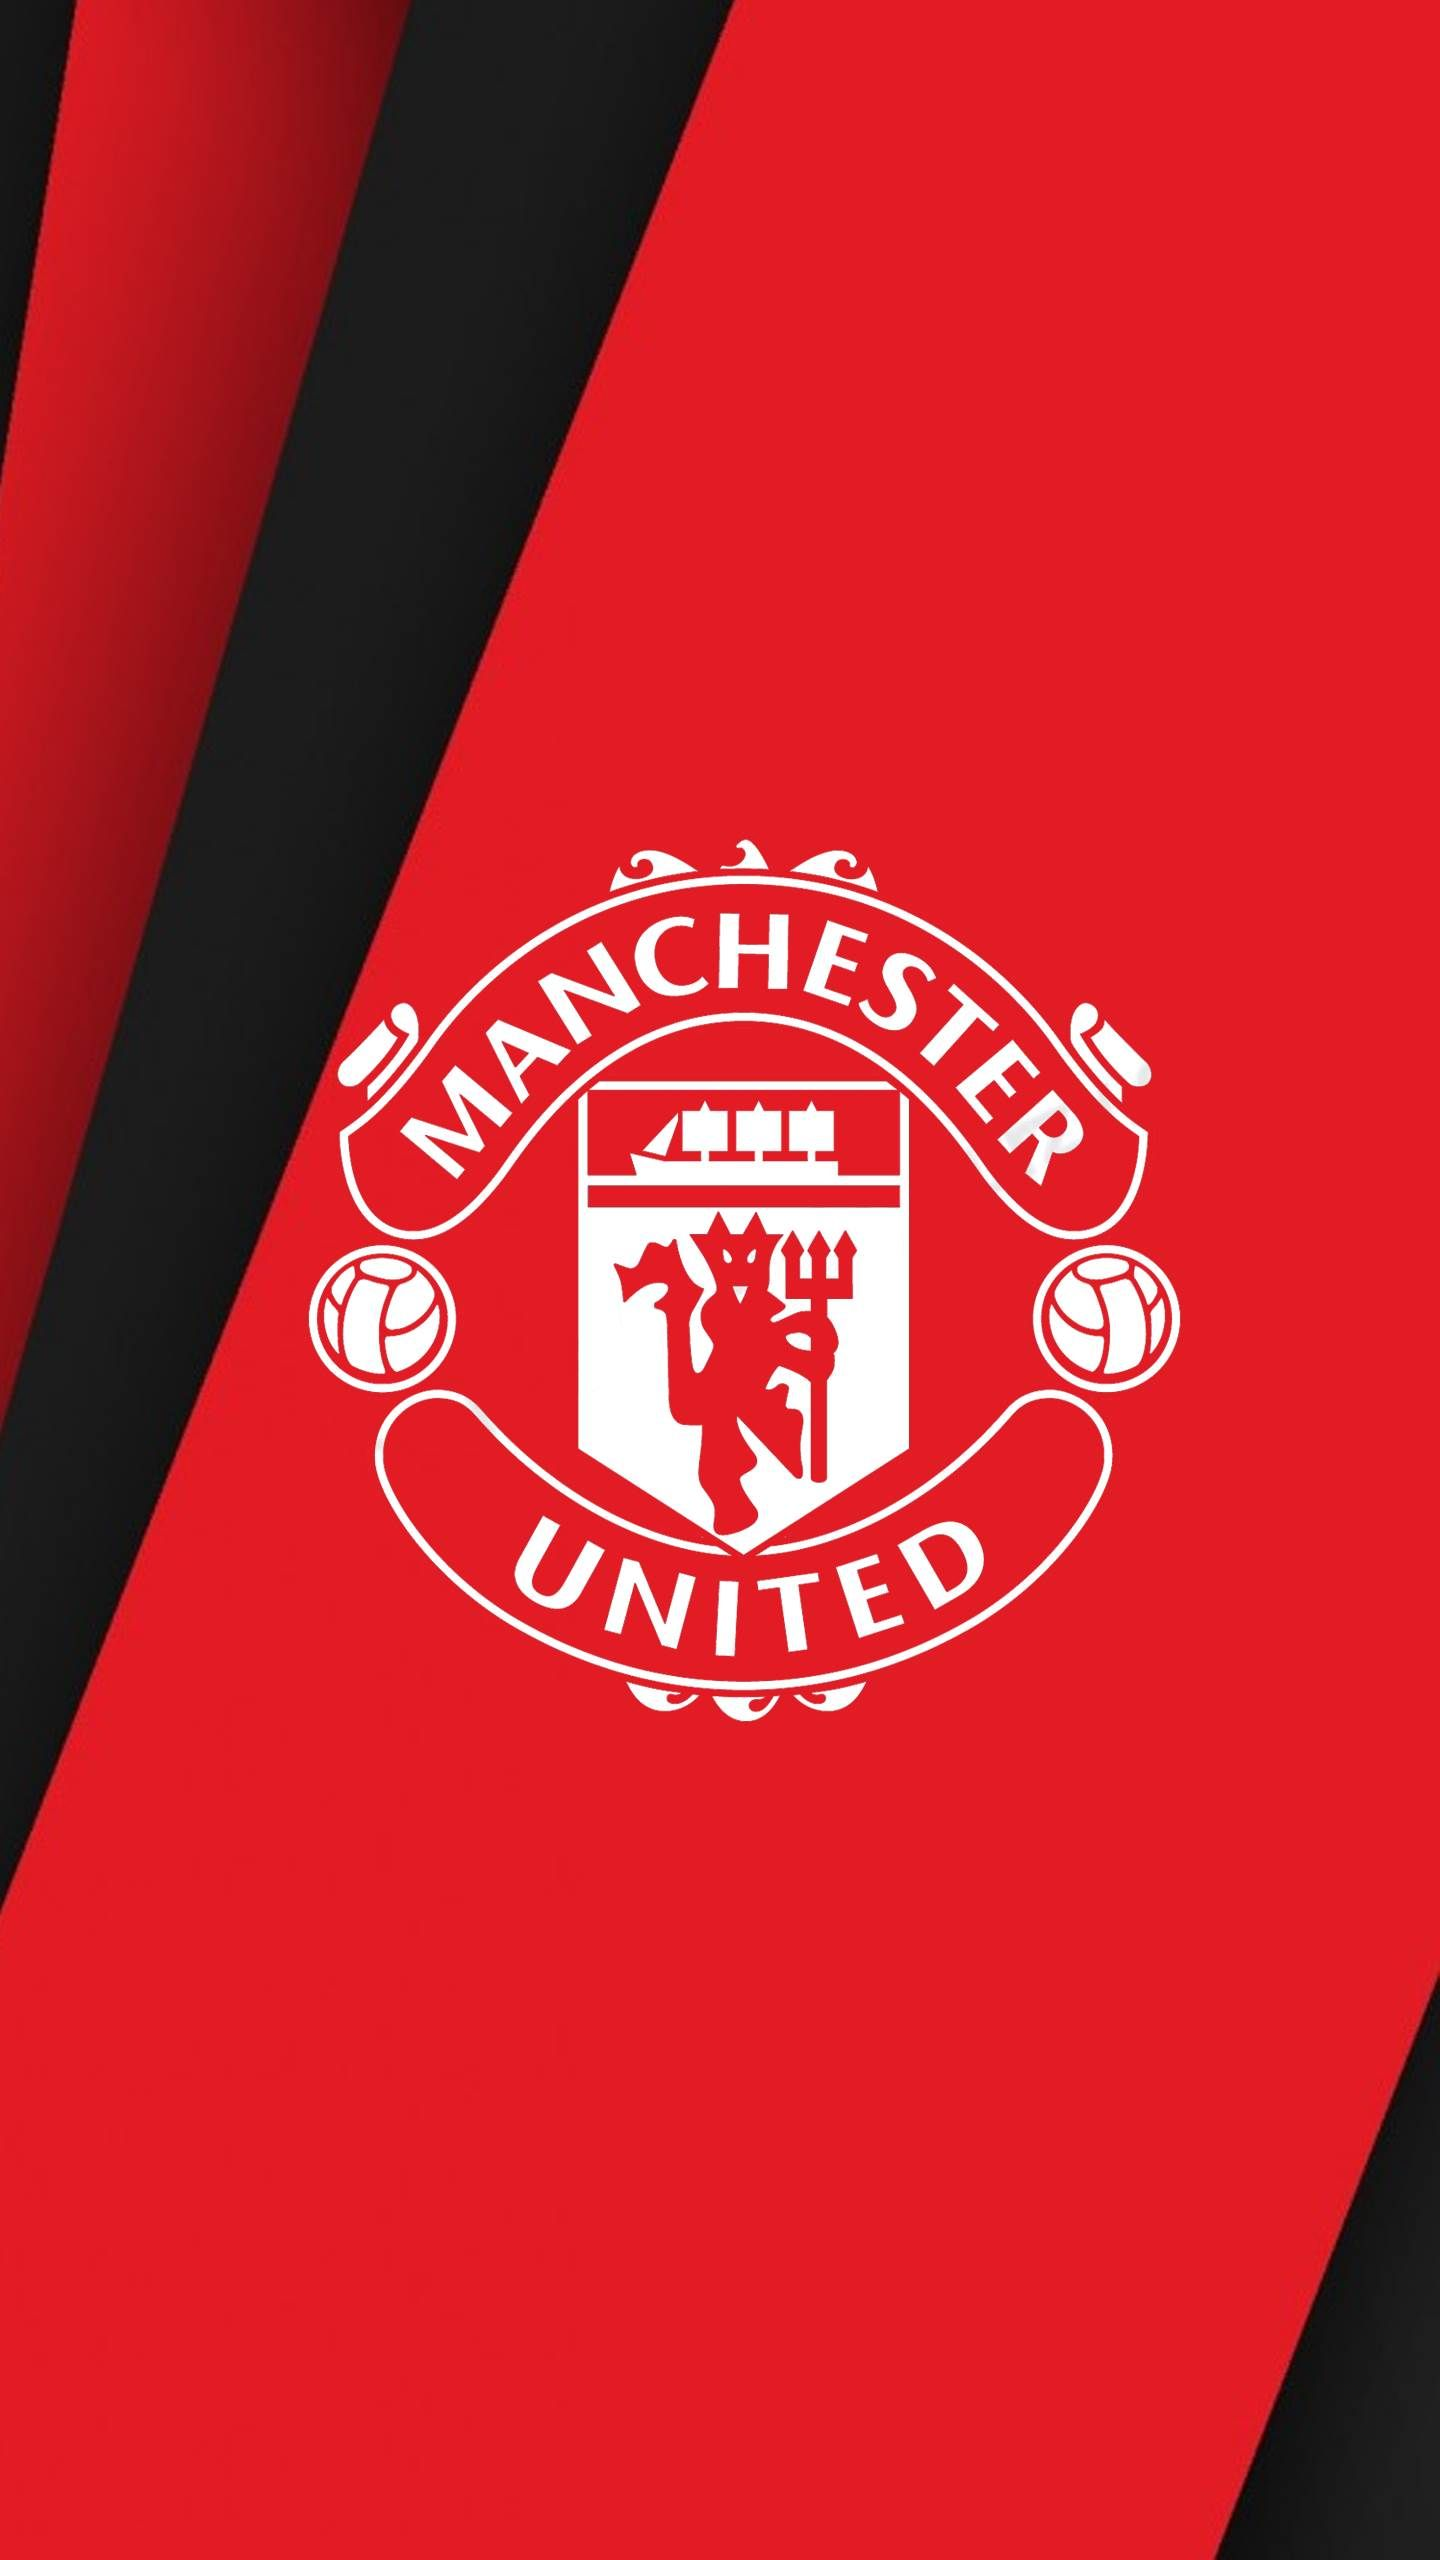 Manchester united wallpapers hd desktop pictures 48 guanchaoge manchester united wallpapers hd desktop pictures 48 guanchaoge voltagebd